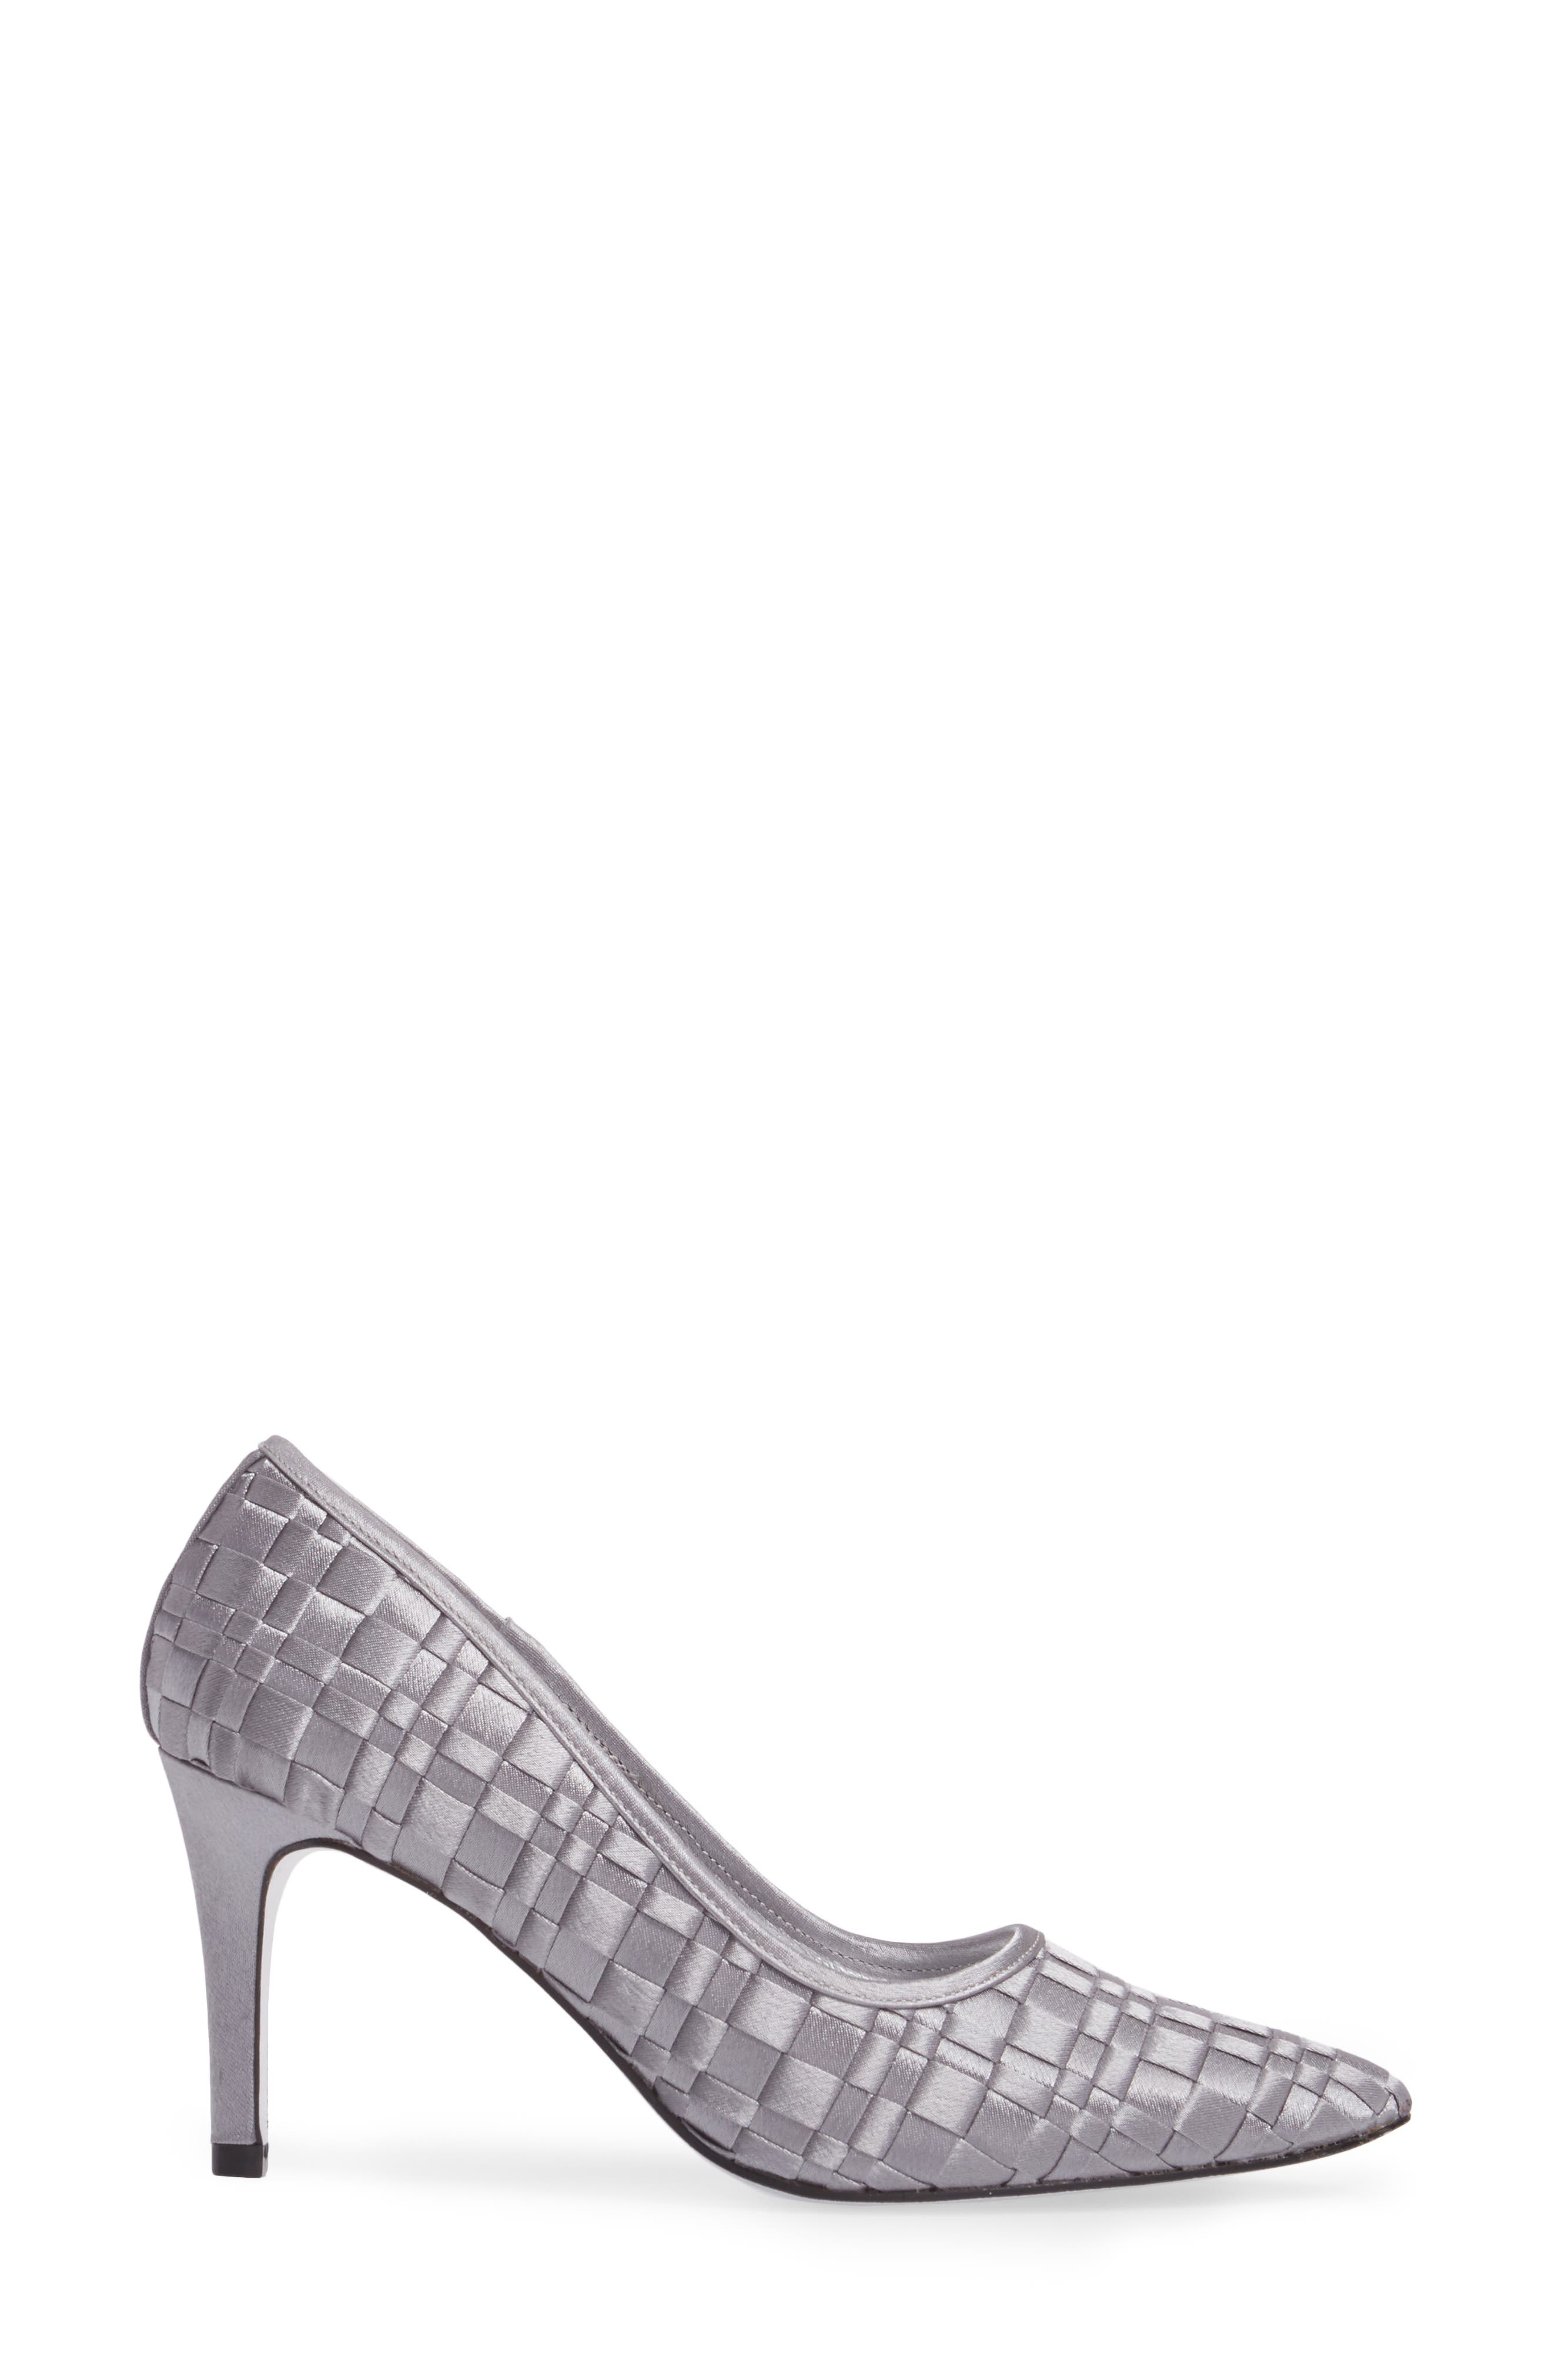 Alternate Image 3  - Adrianna Papell Hasting Pointy Toe Pump (Women)